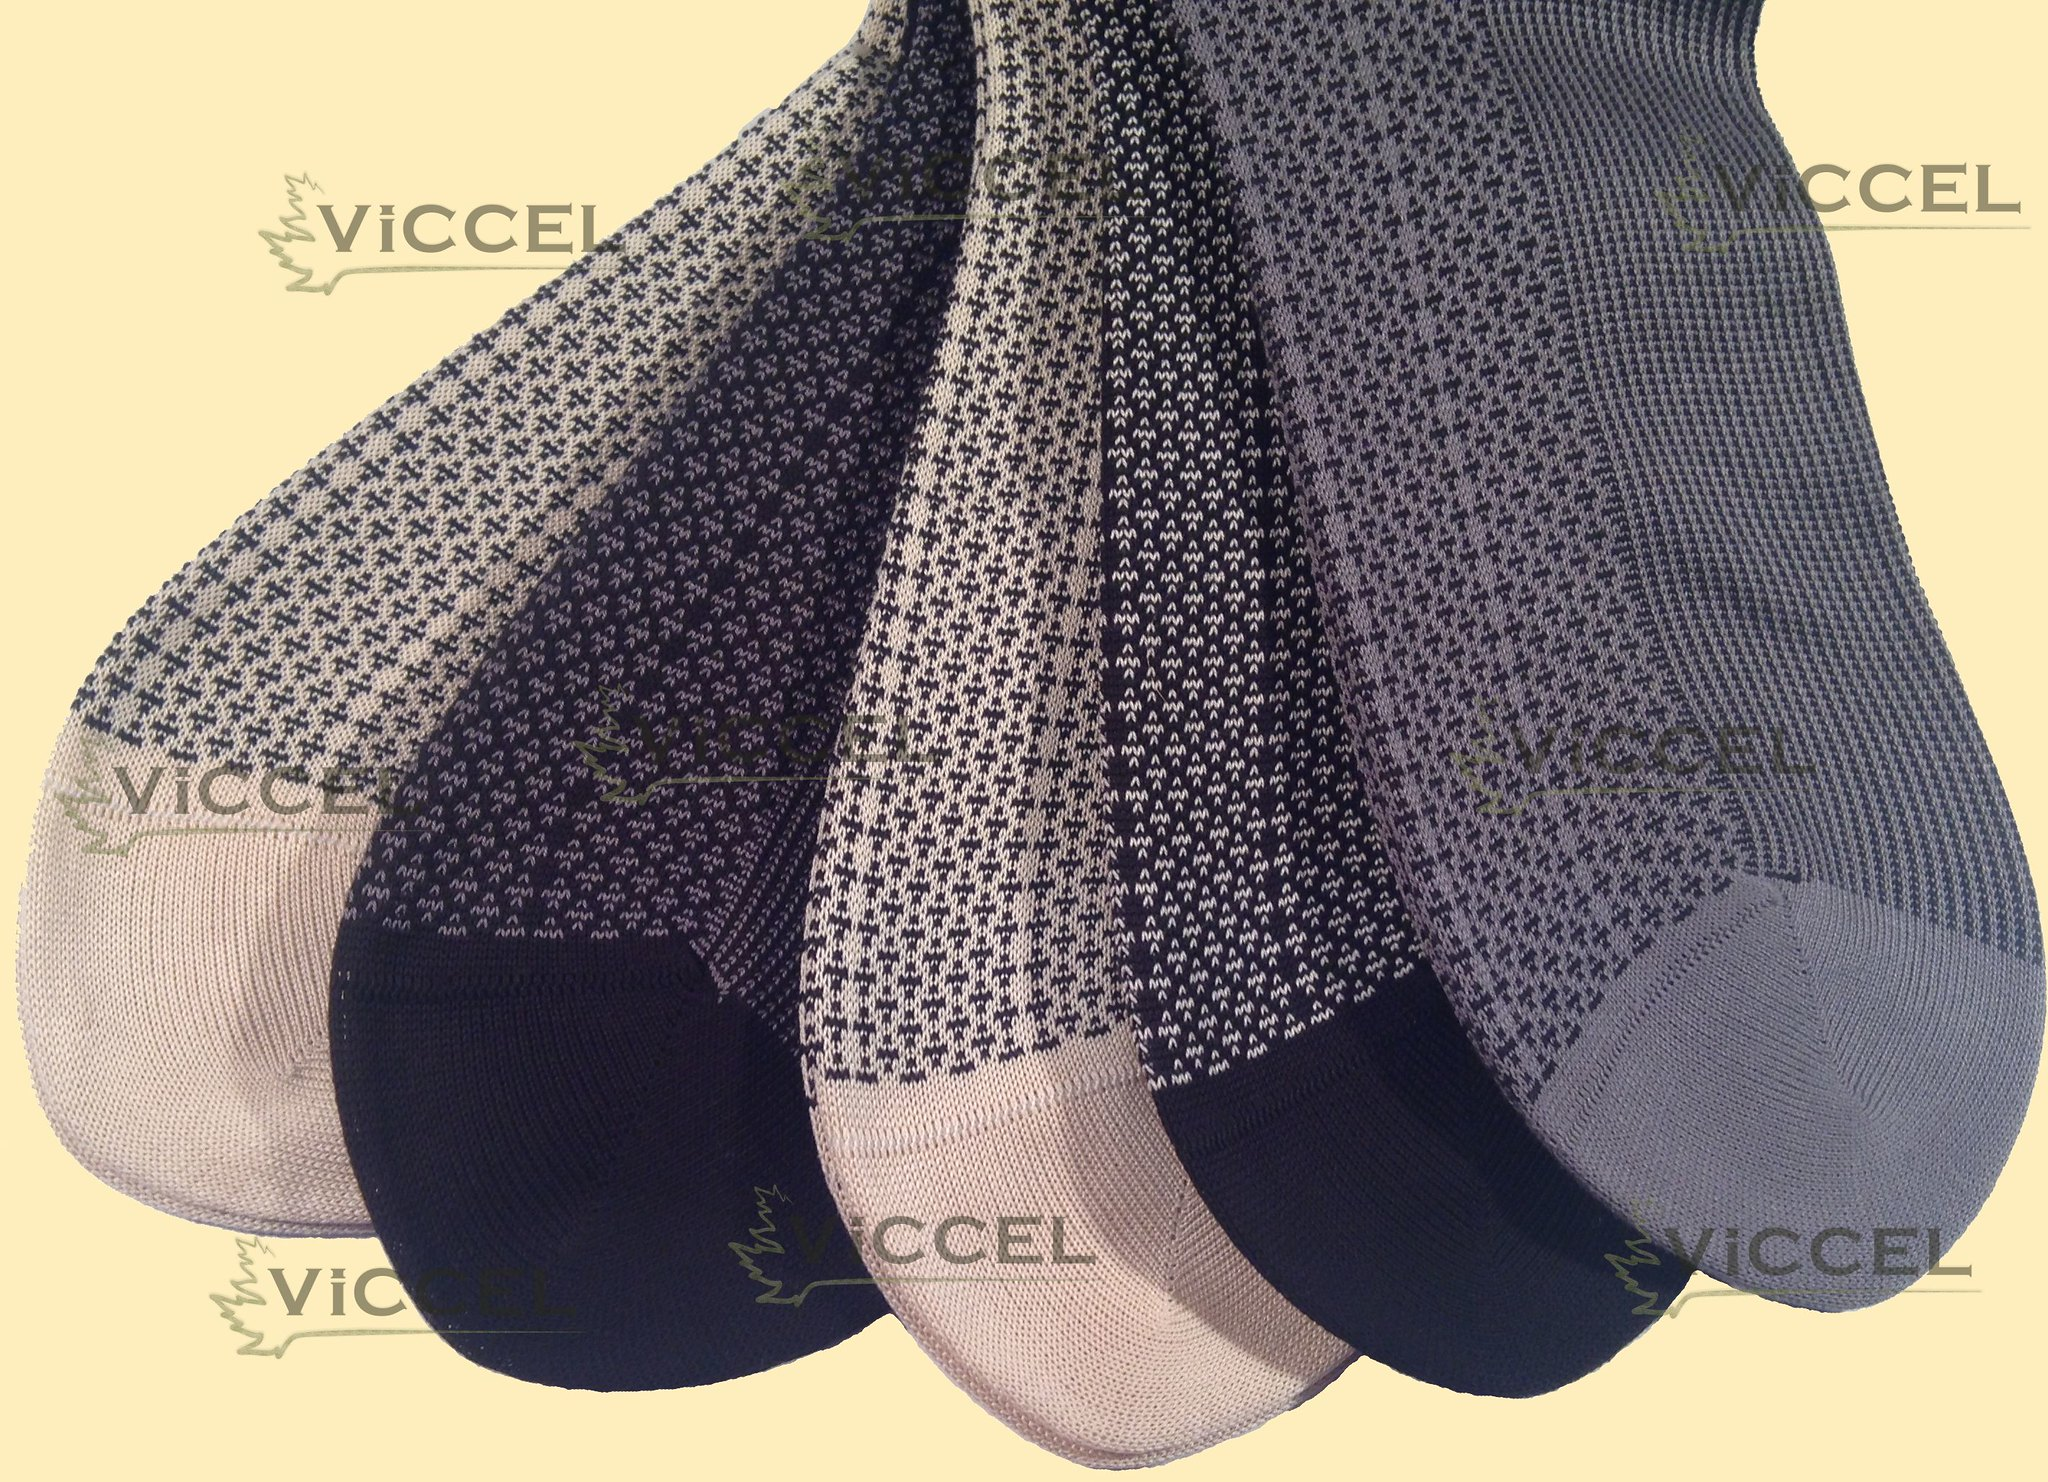 Viccel Qualitty Dress Socks, happy feet, happy people, direct sale from the producer at reasonable prices,stripe dots cross gray-black red-black black-raw Colors 100% Cotton